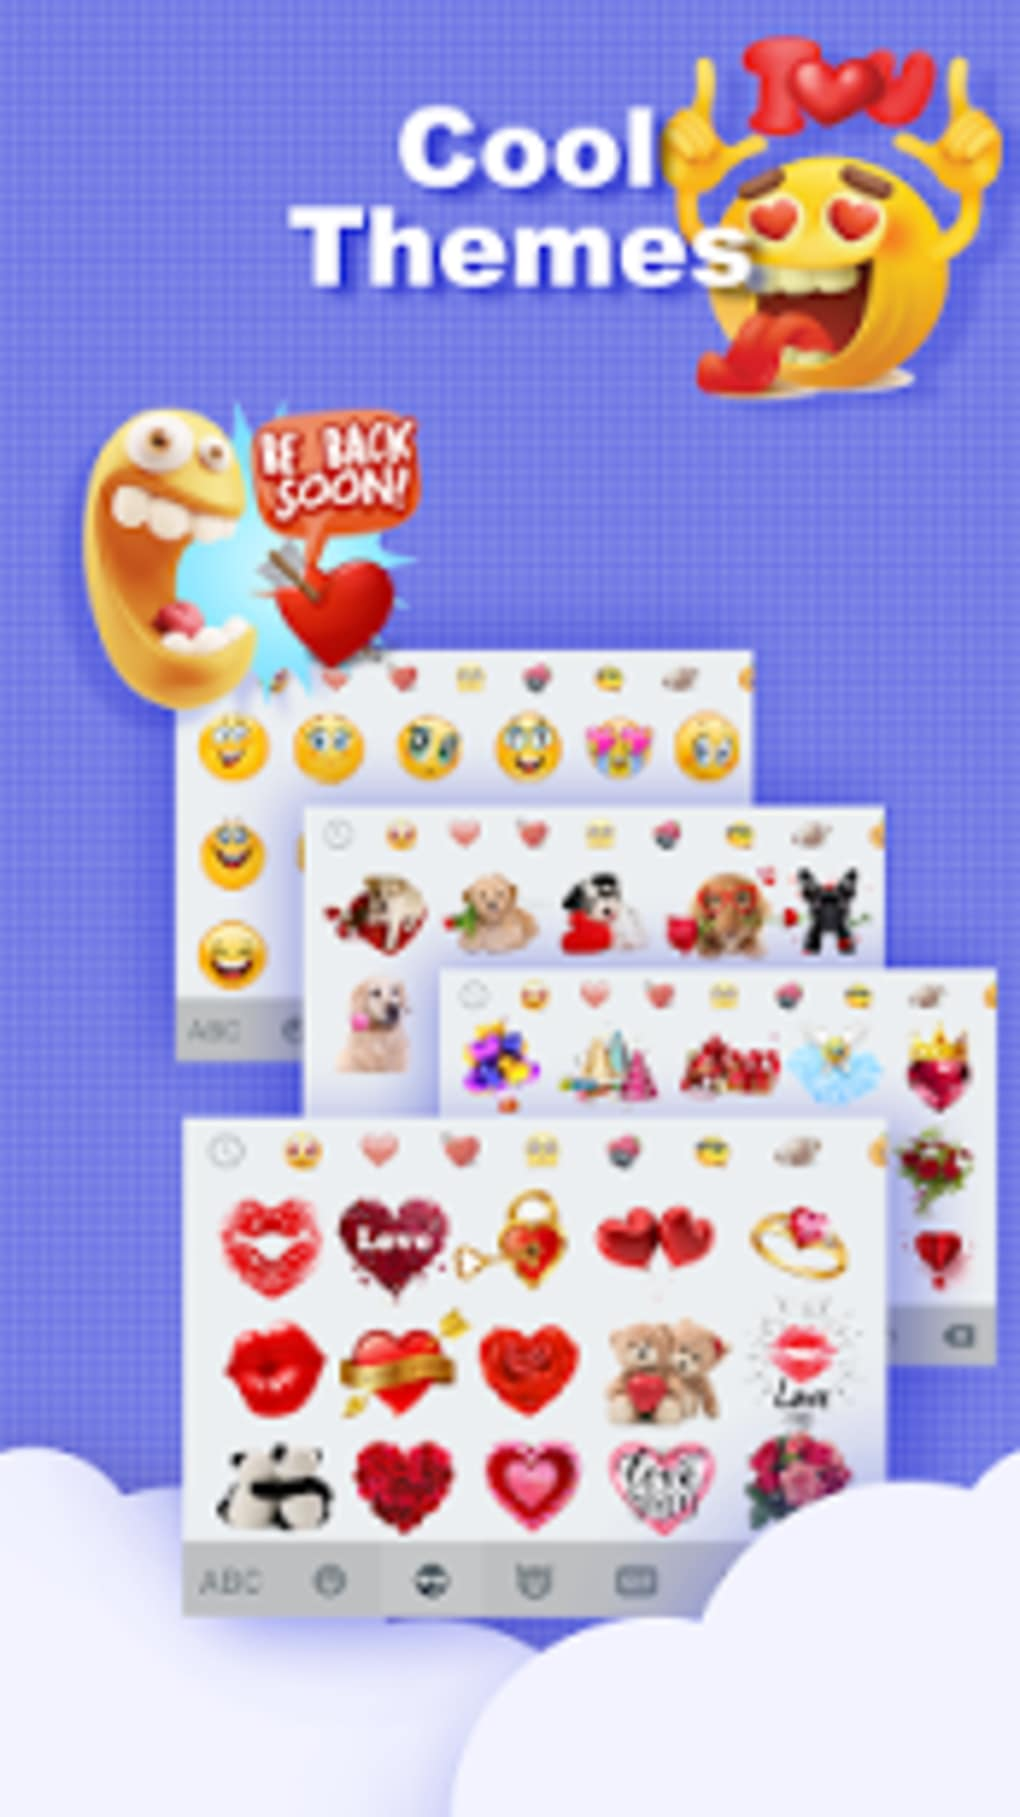 Emoji Keyboard - Cute Emoticons